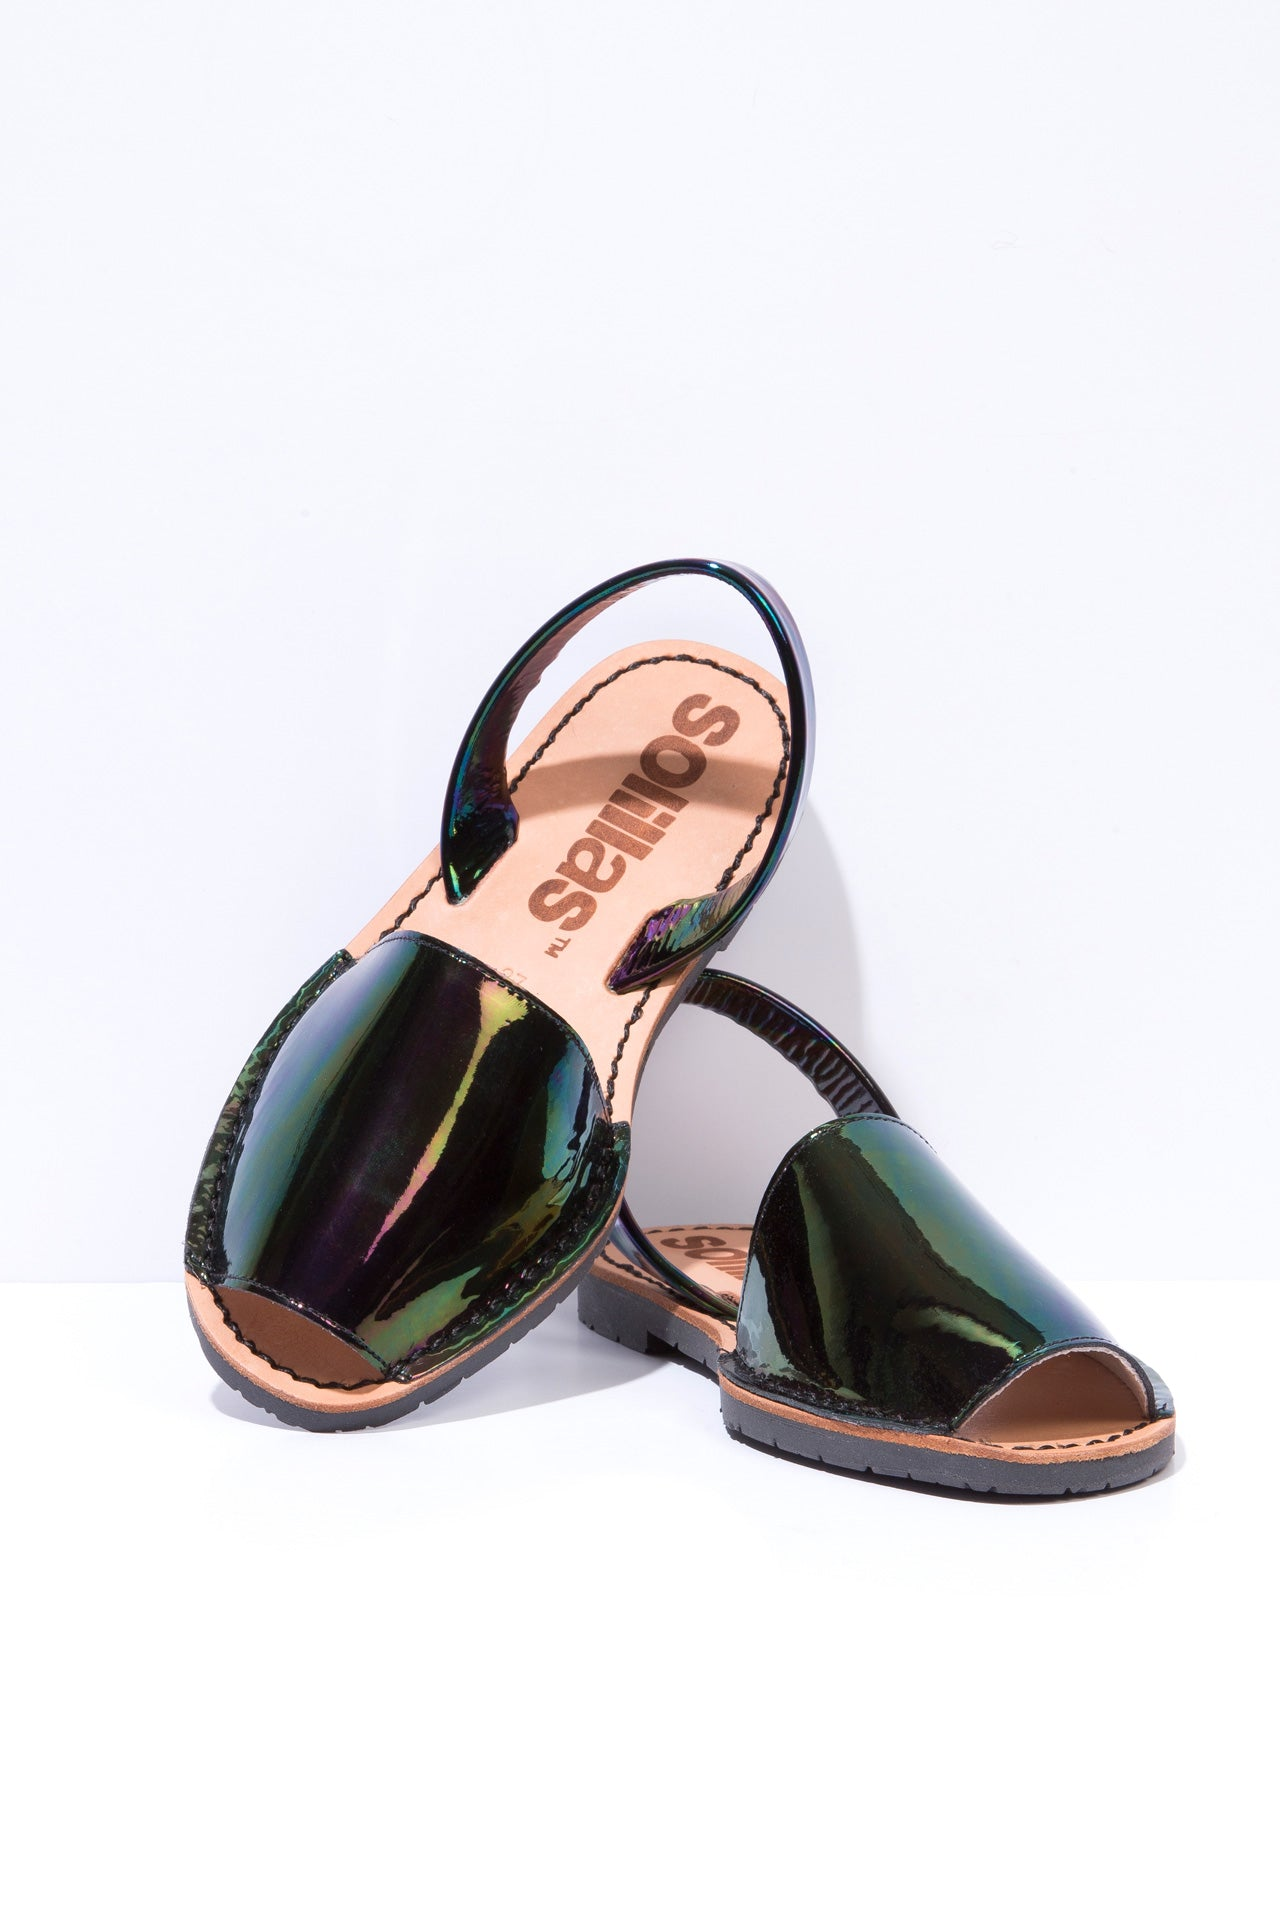 Ibiza Rocks House - Petrol Leather Menorcan sandals